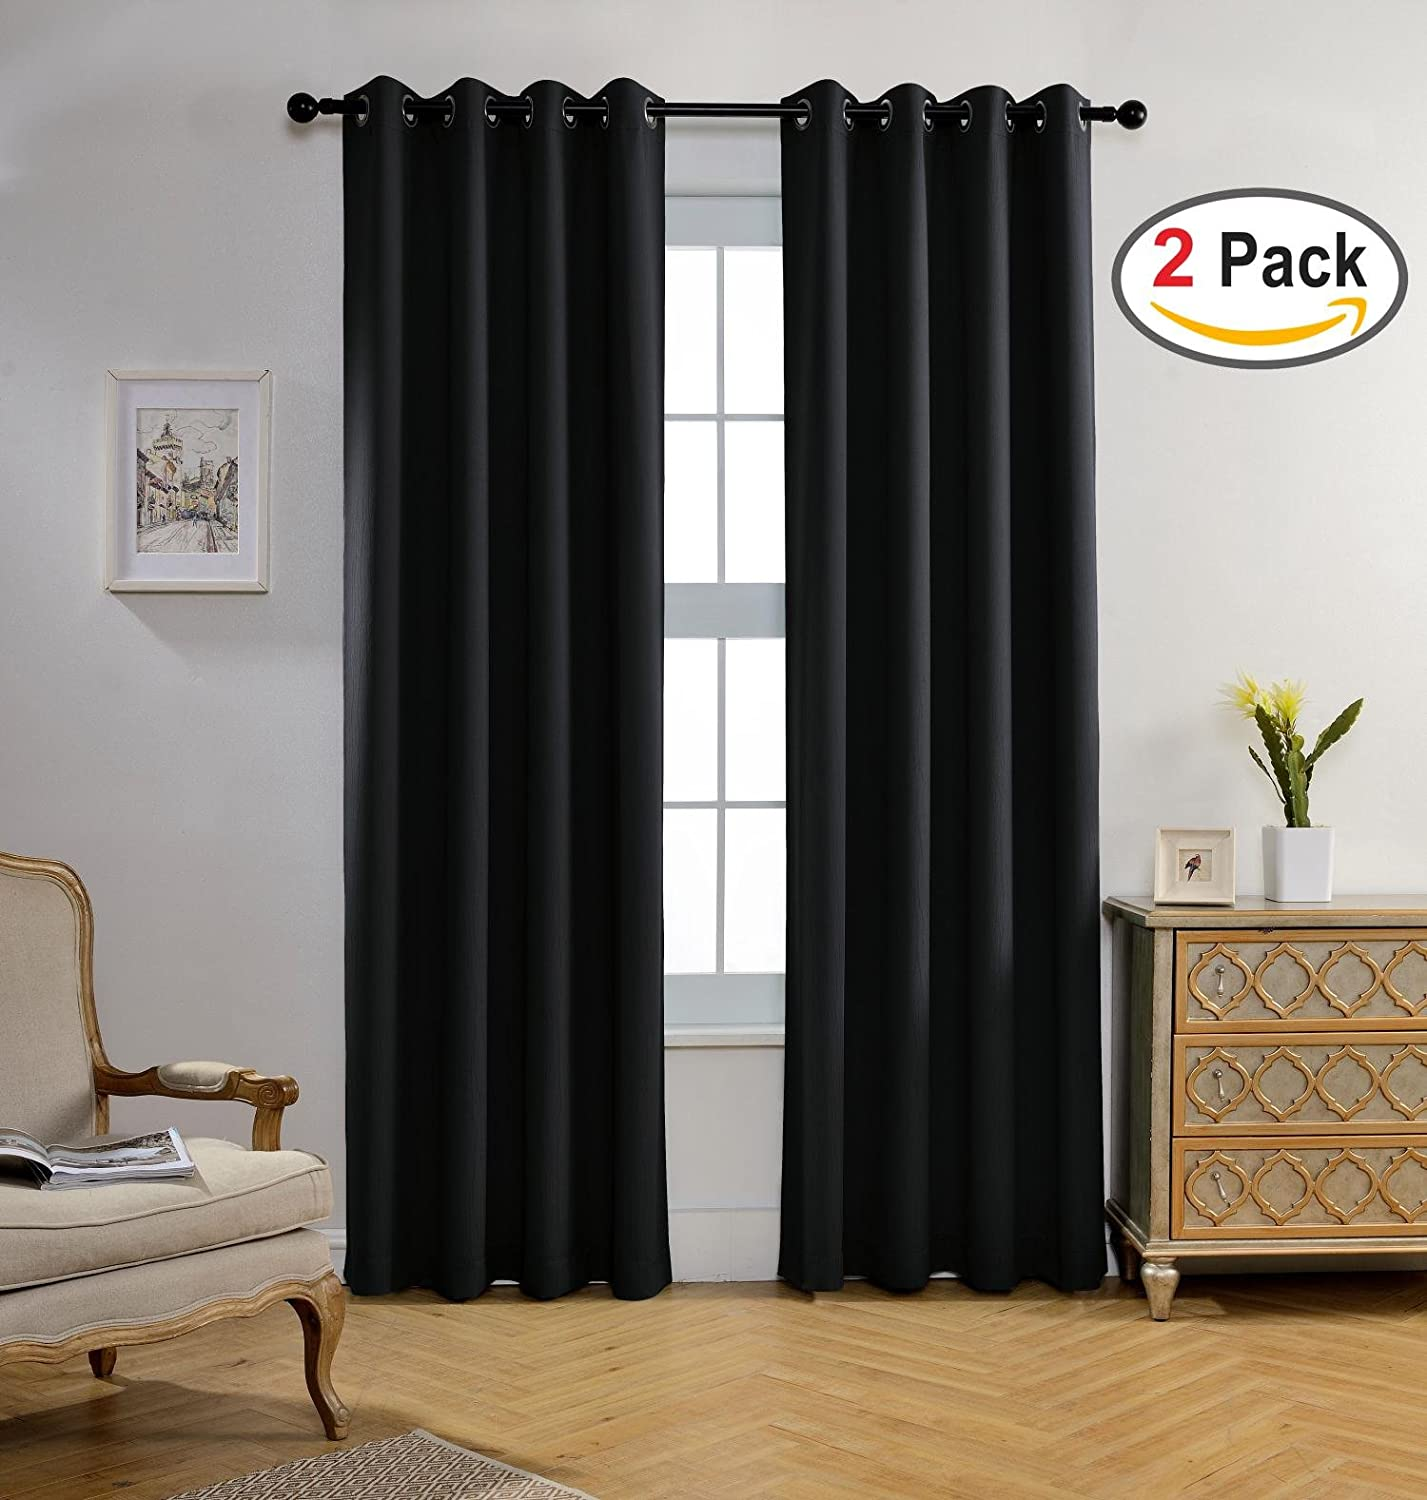 Miuco Room Darkening Texture Look Blackout Curtain Panels for Office Black